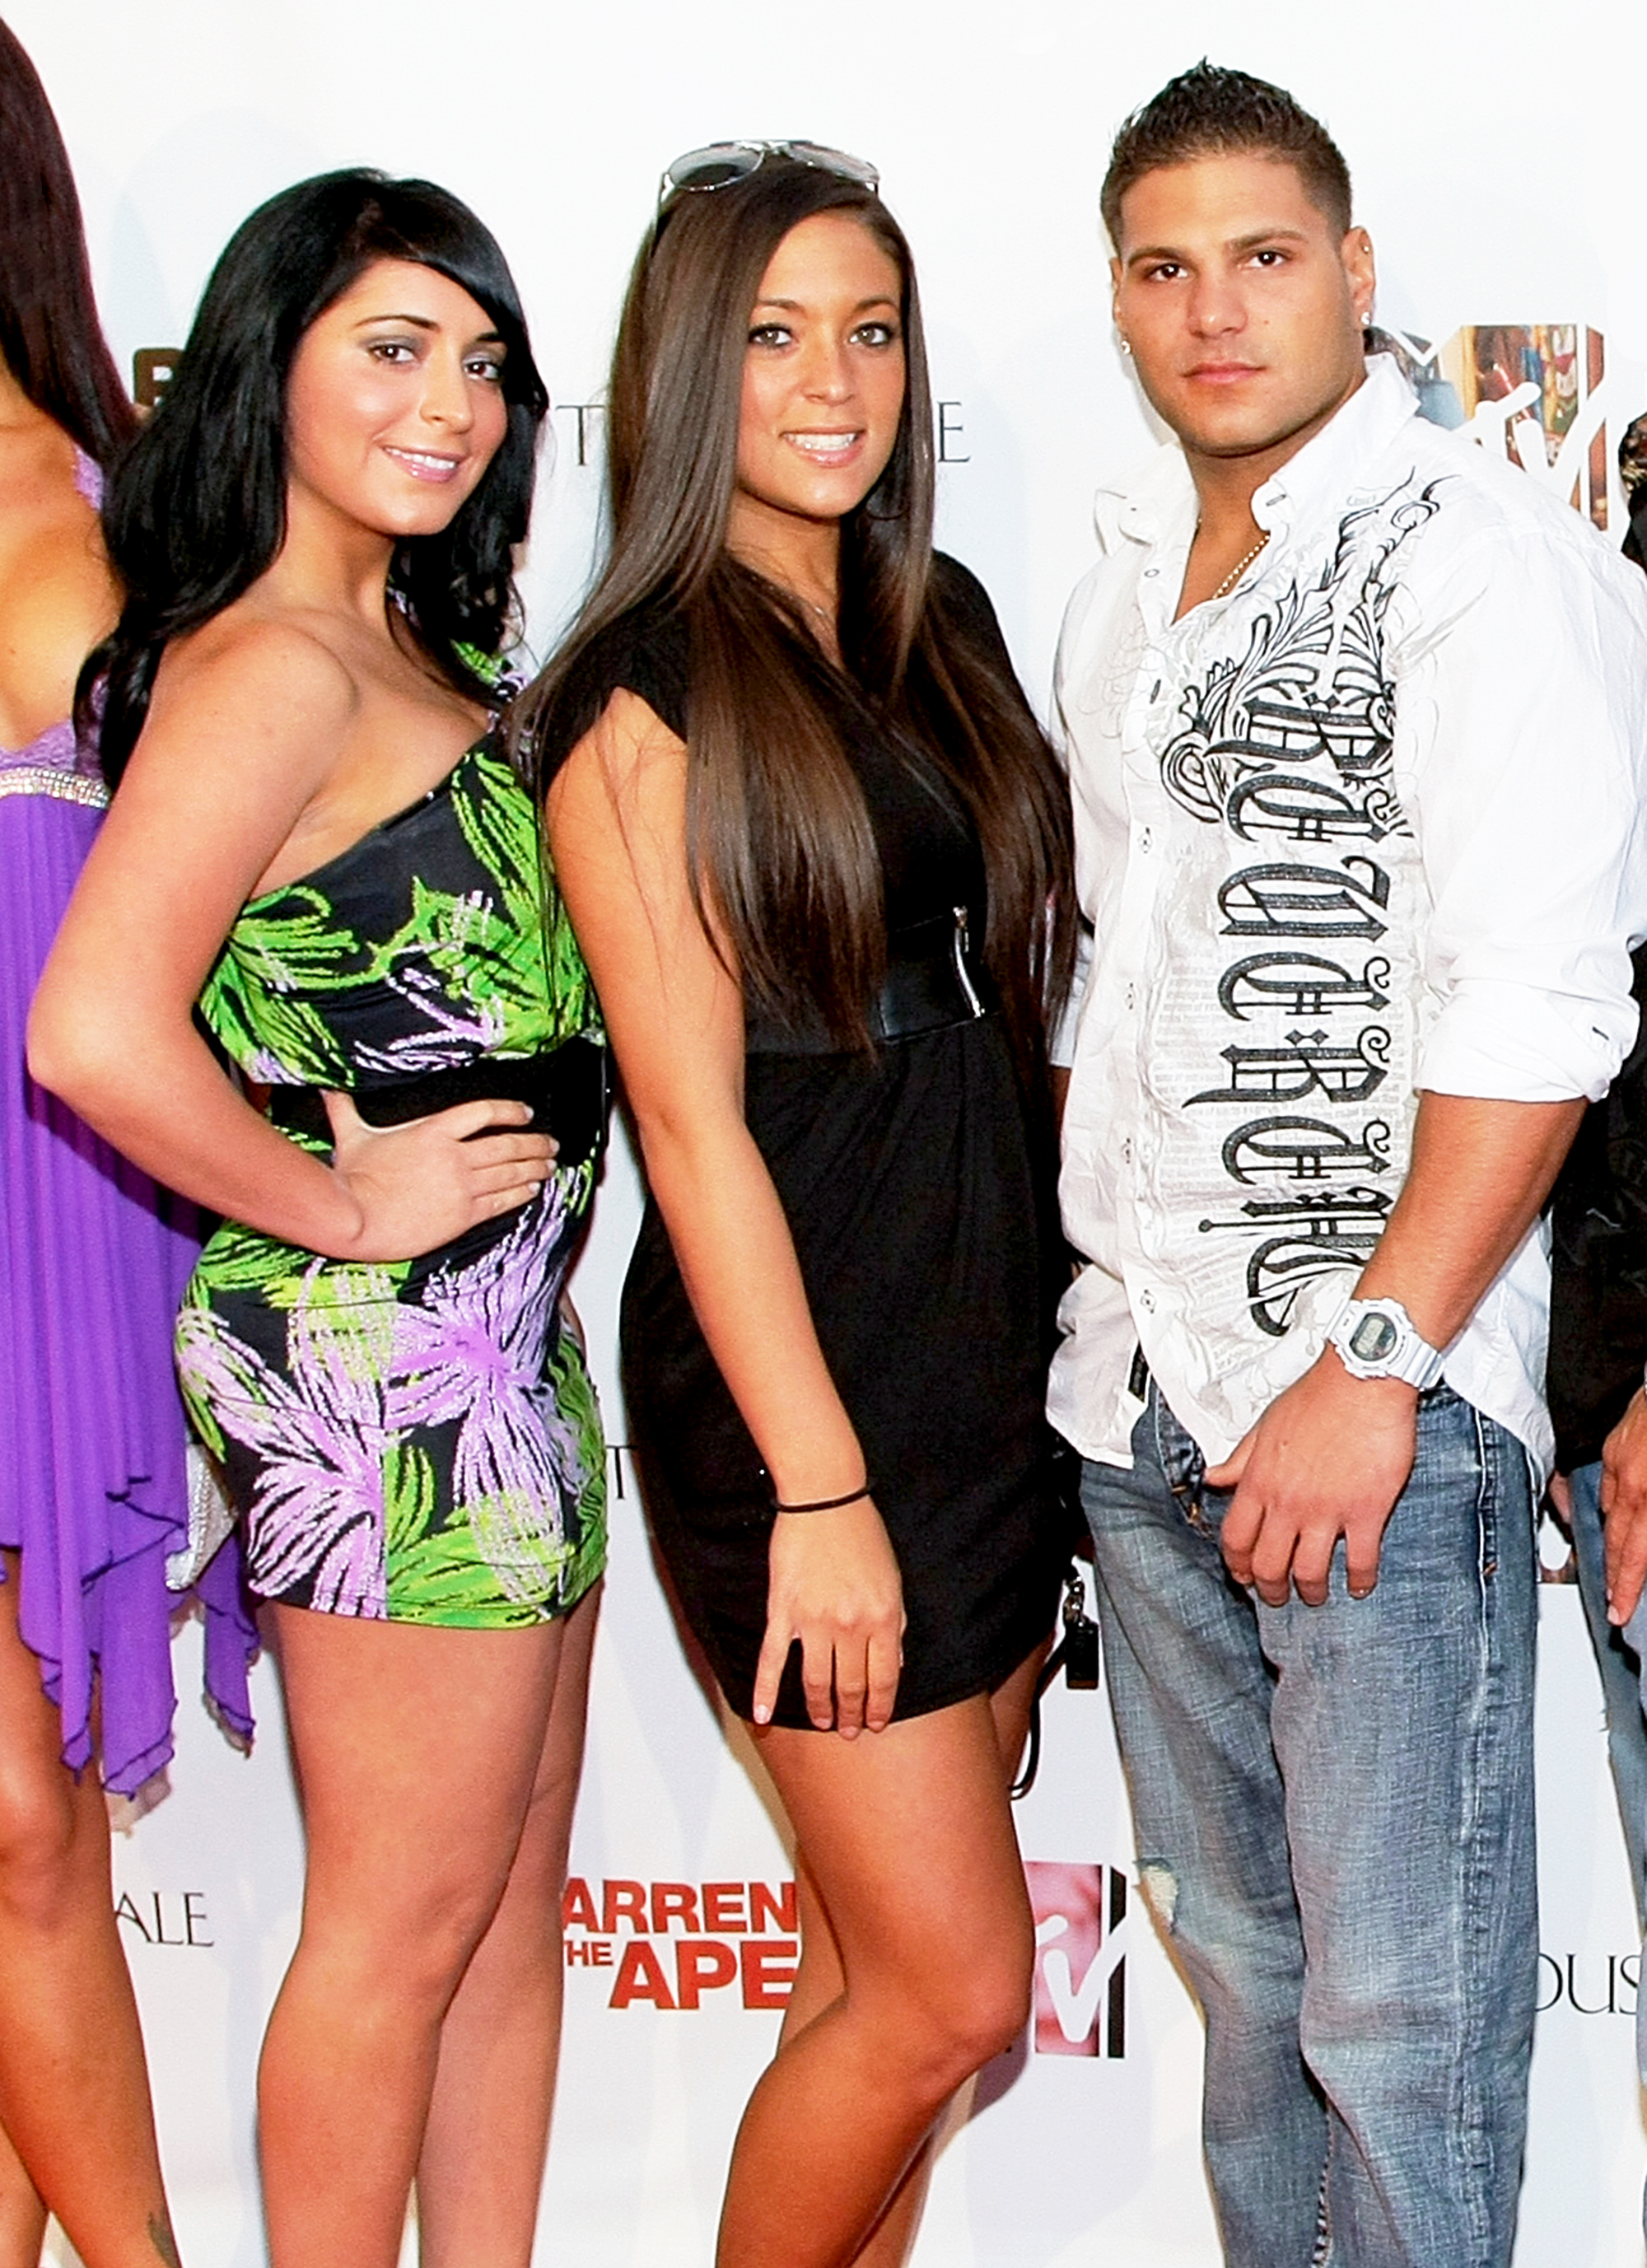 How old is sammi from jersey shore